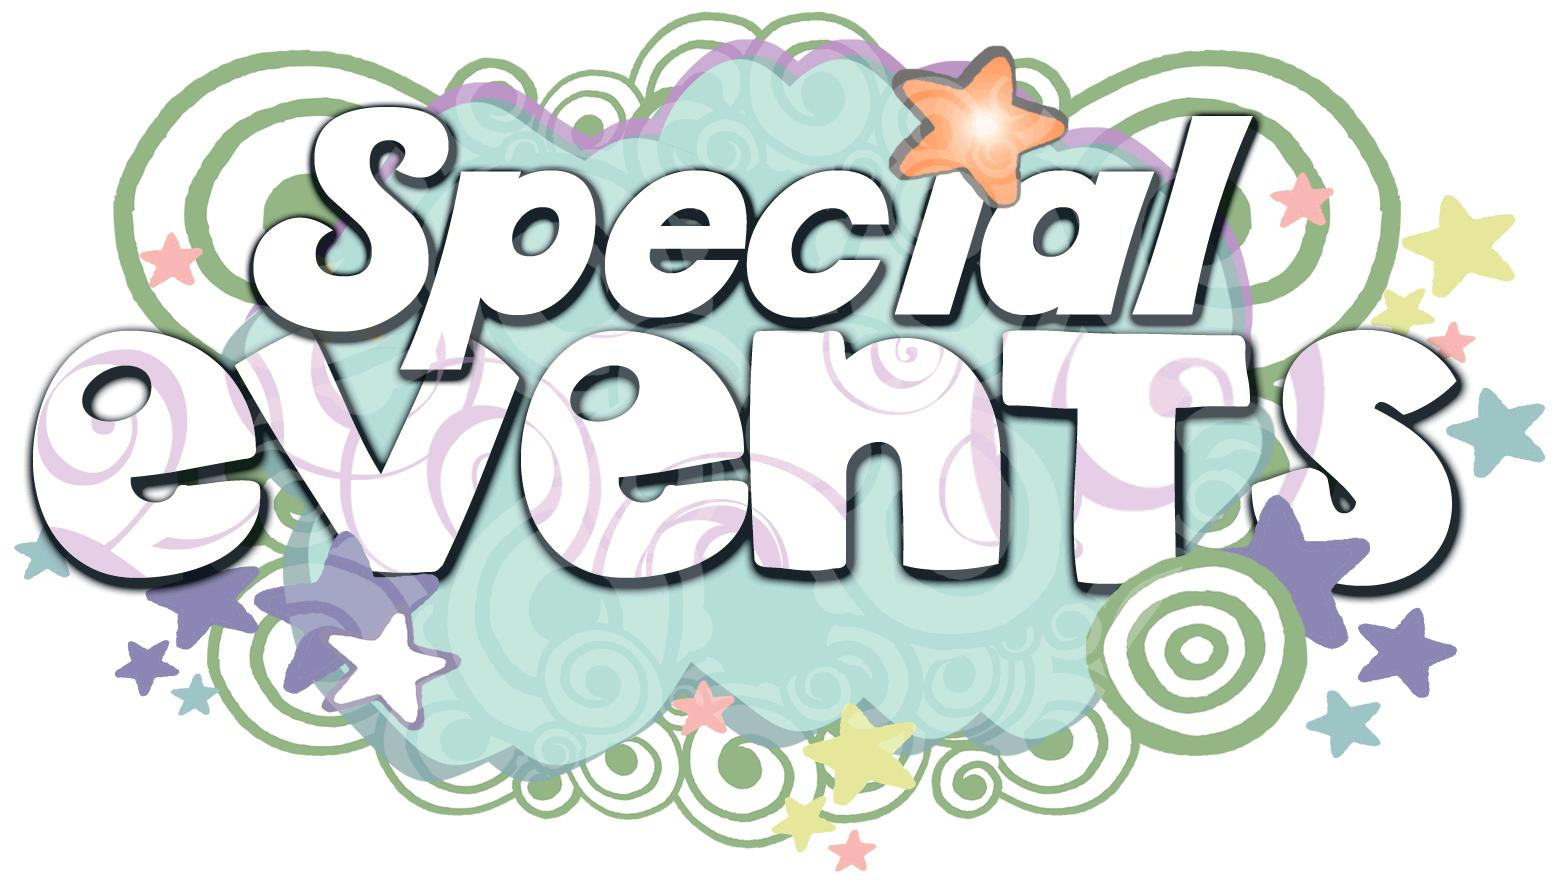 Free Events Cliparts, Download Free Clip Art, Free Clip Art.